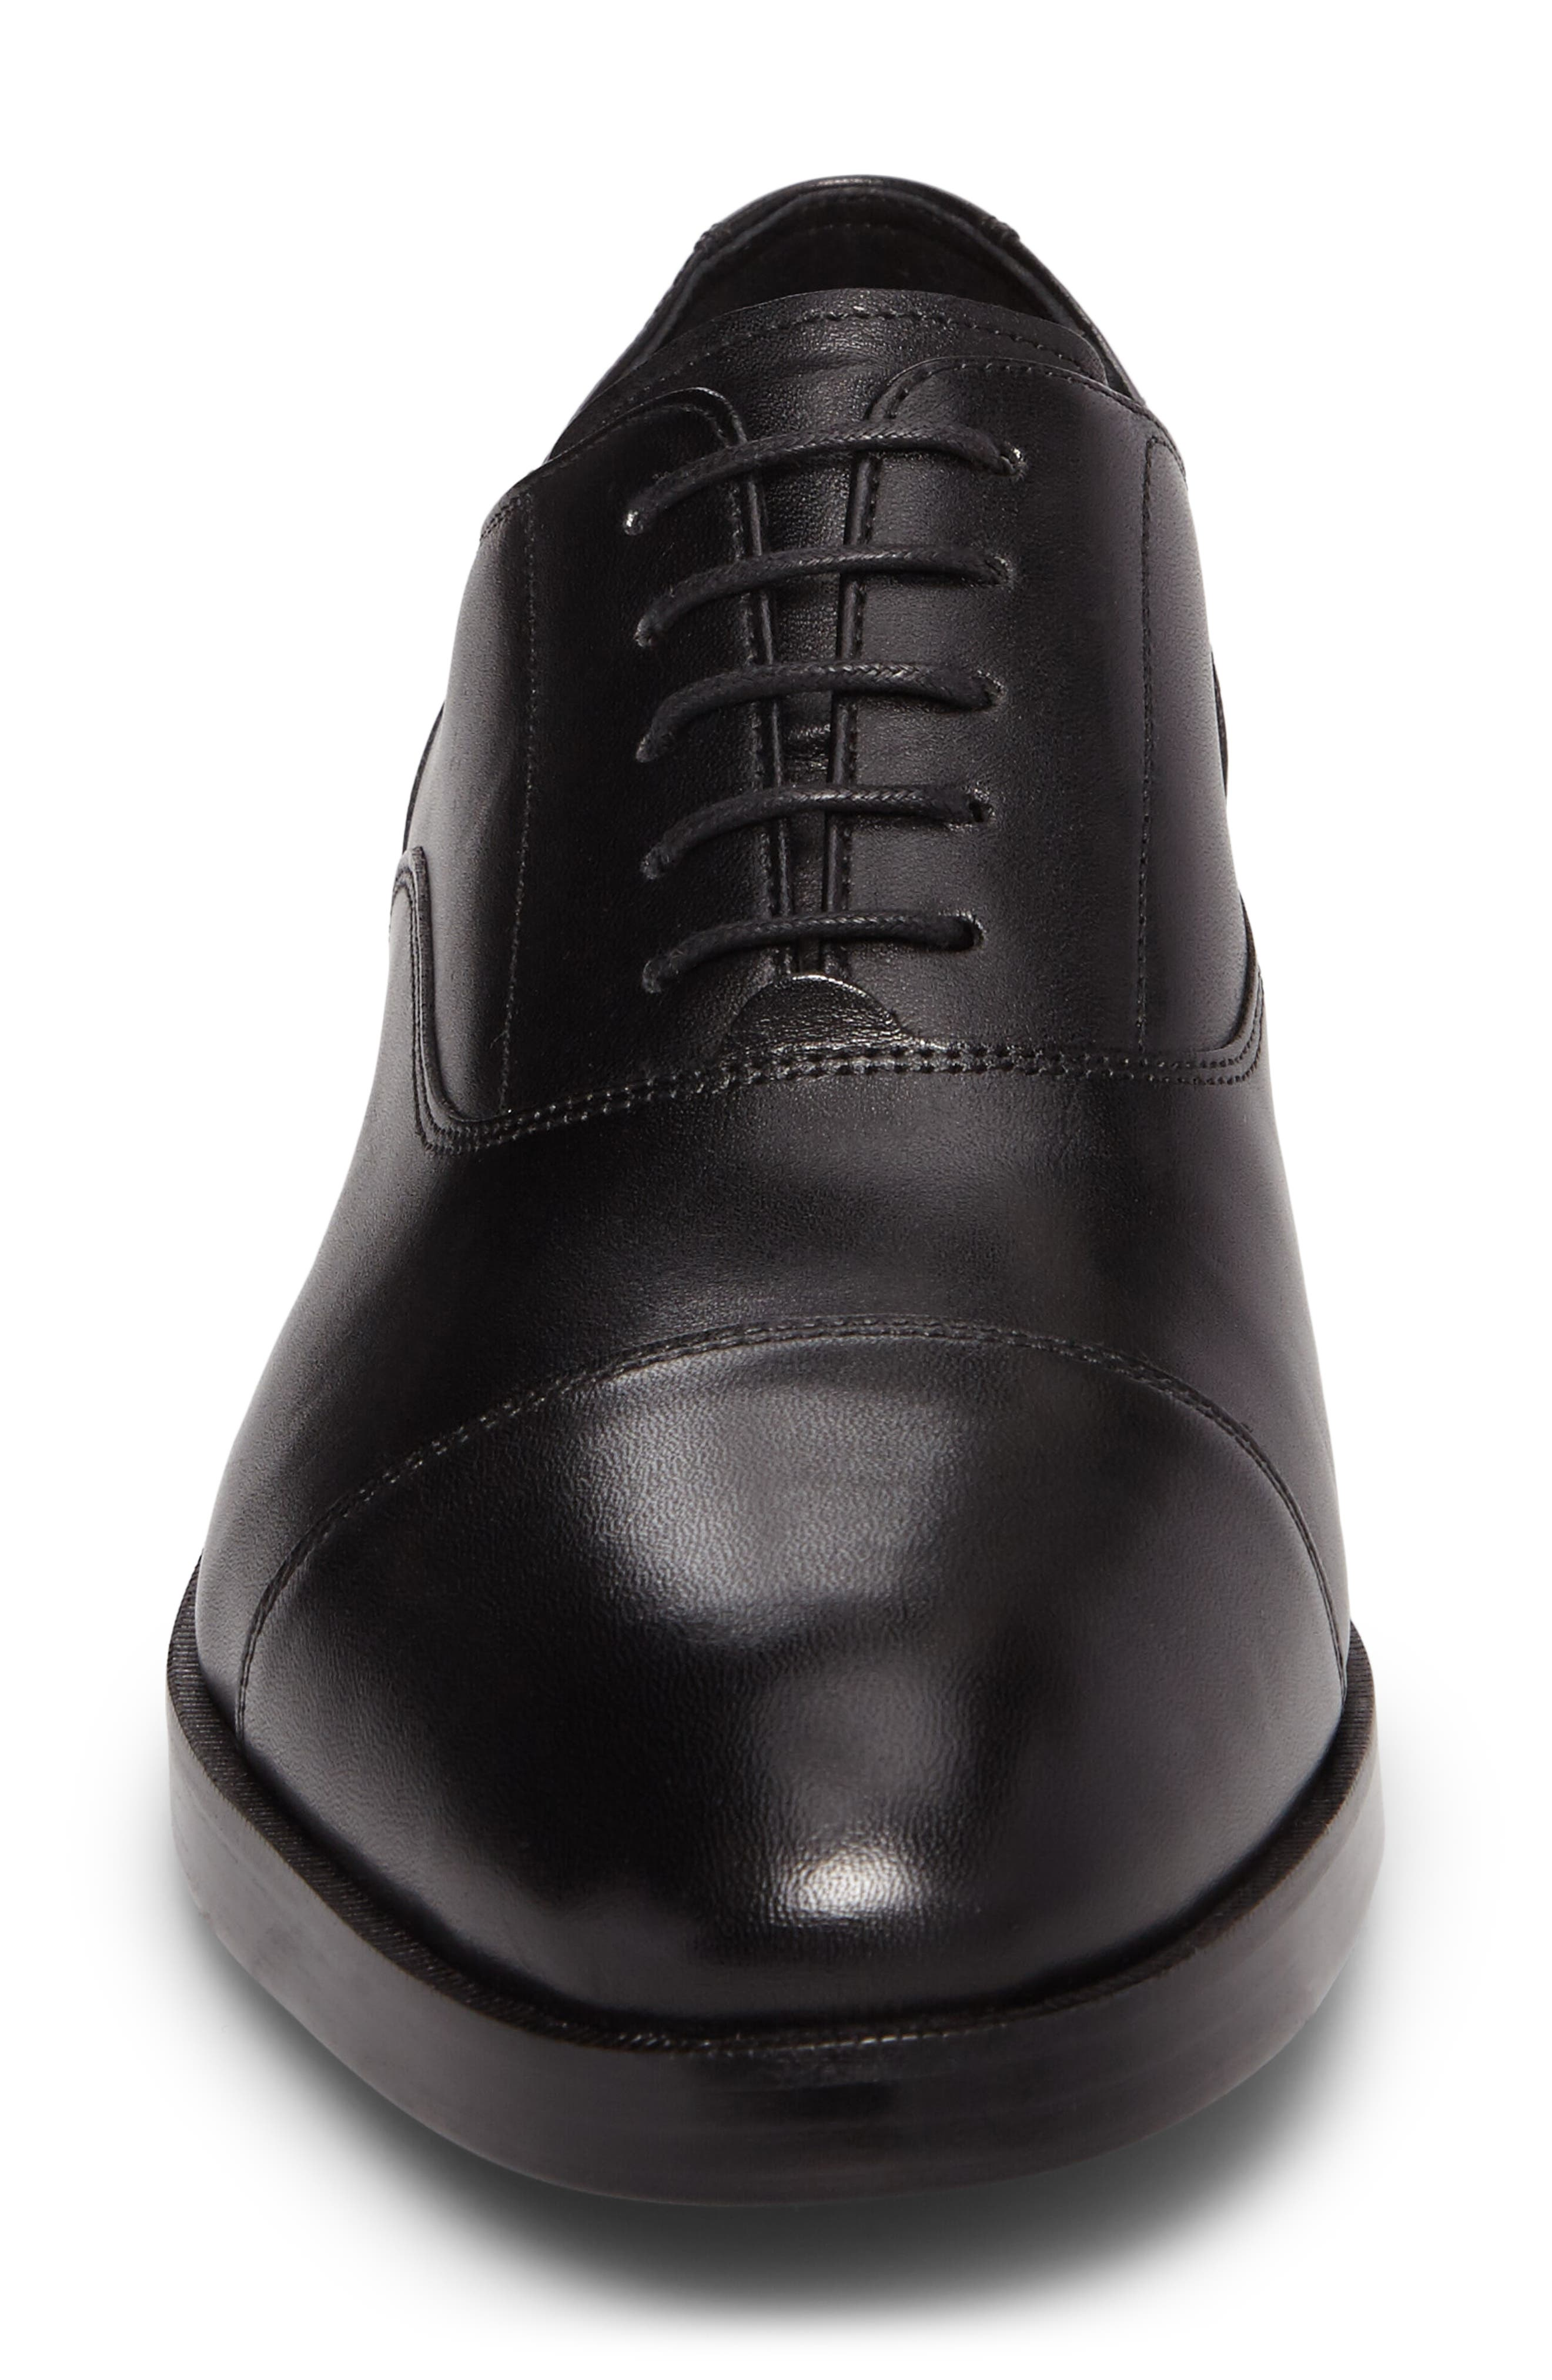 COLE HAAN, Harrison Grand Cap Toe Oxford, Alternate thumbnail 4, color, BLACK/ BLACK LEATHER